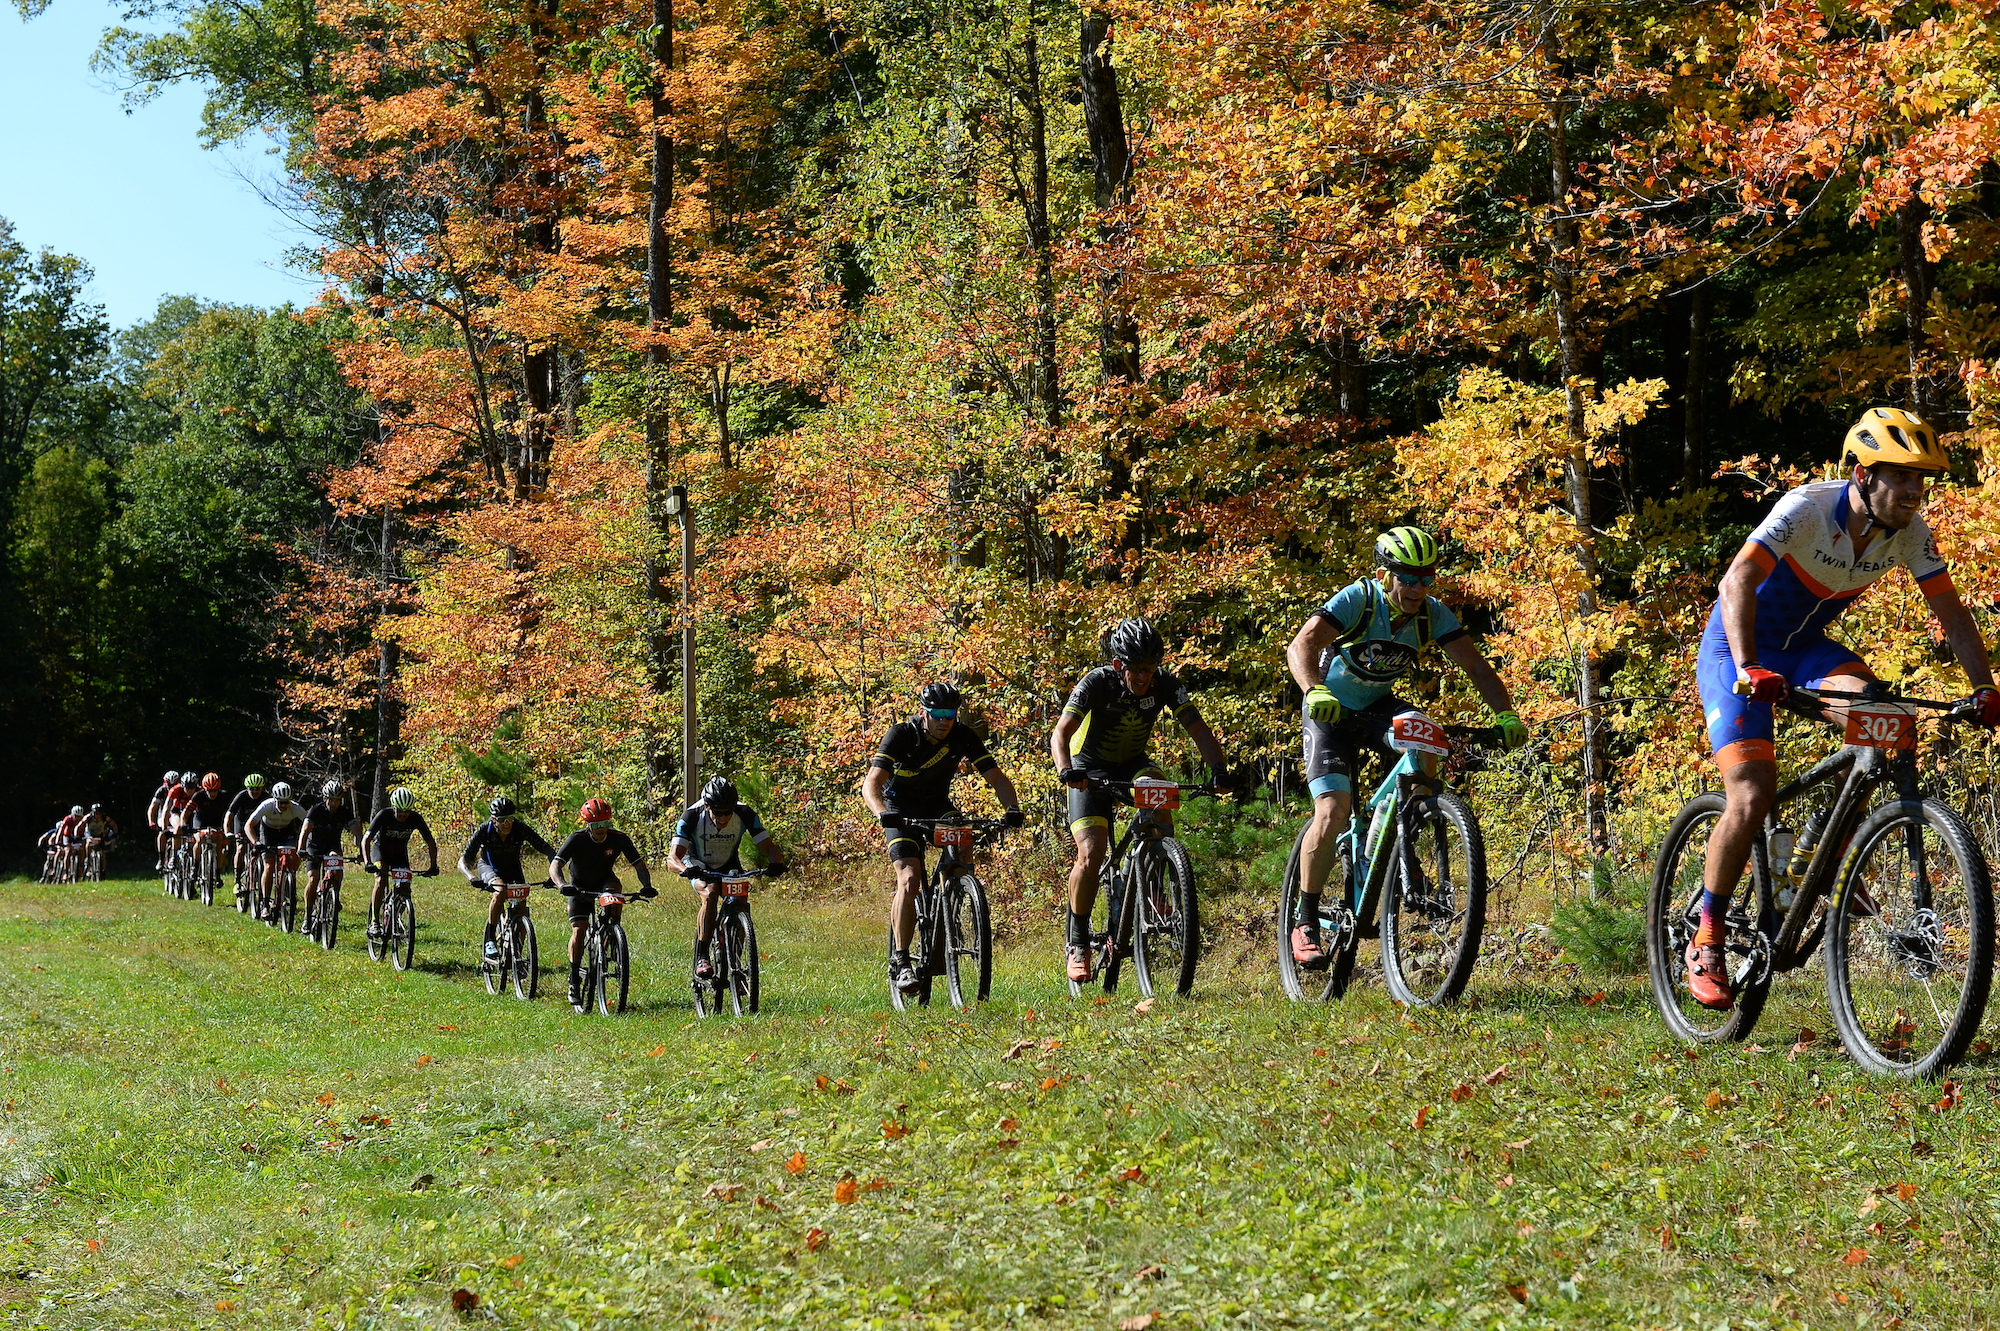 Riders at the 38th Annual Chequamegon MTB Festival, Chequamegon, Wisconsin. Photo courtesy Life Time